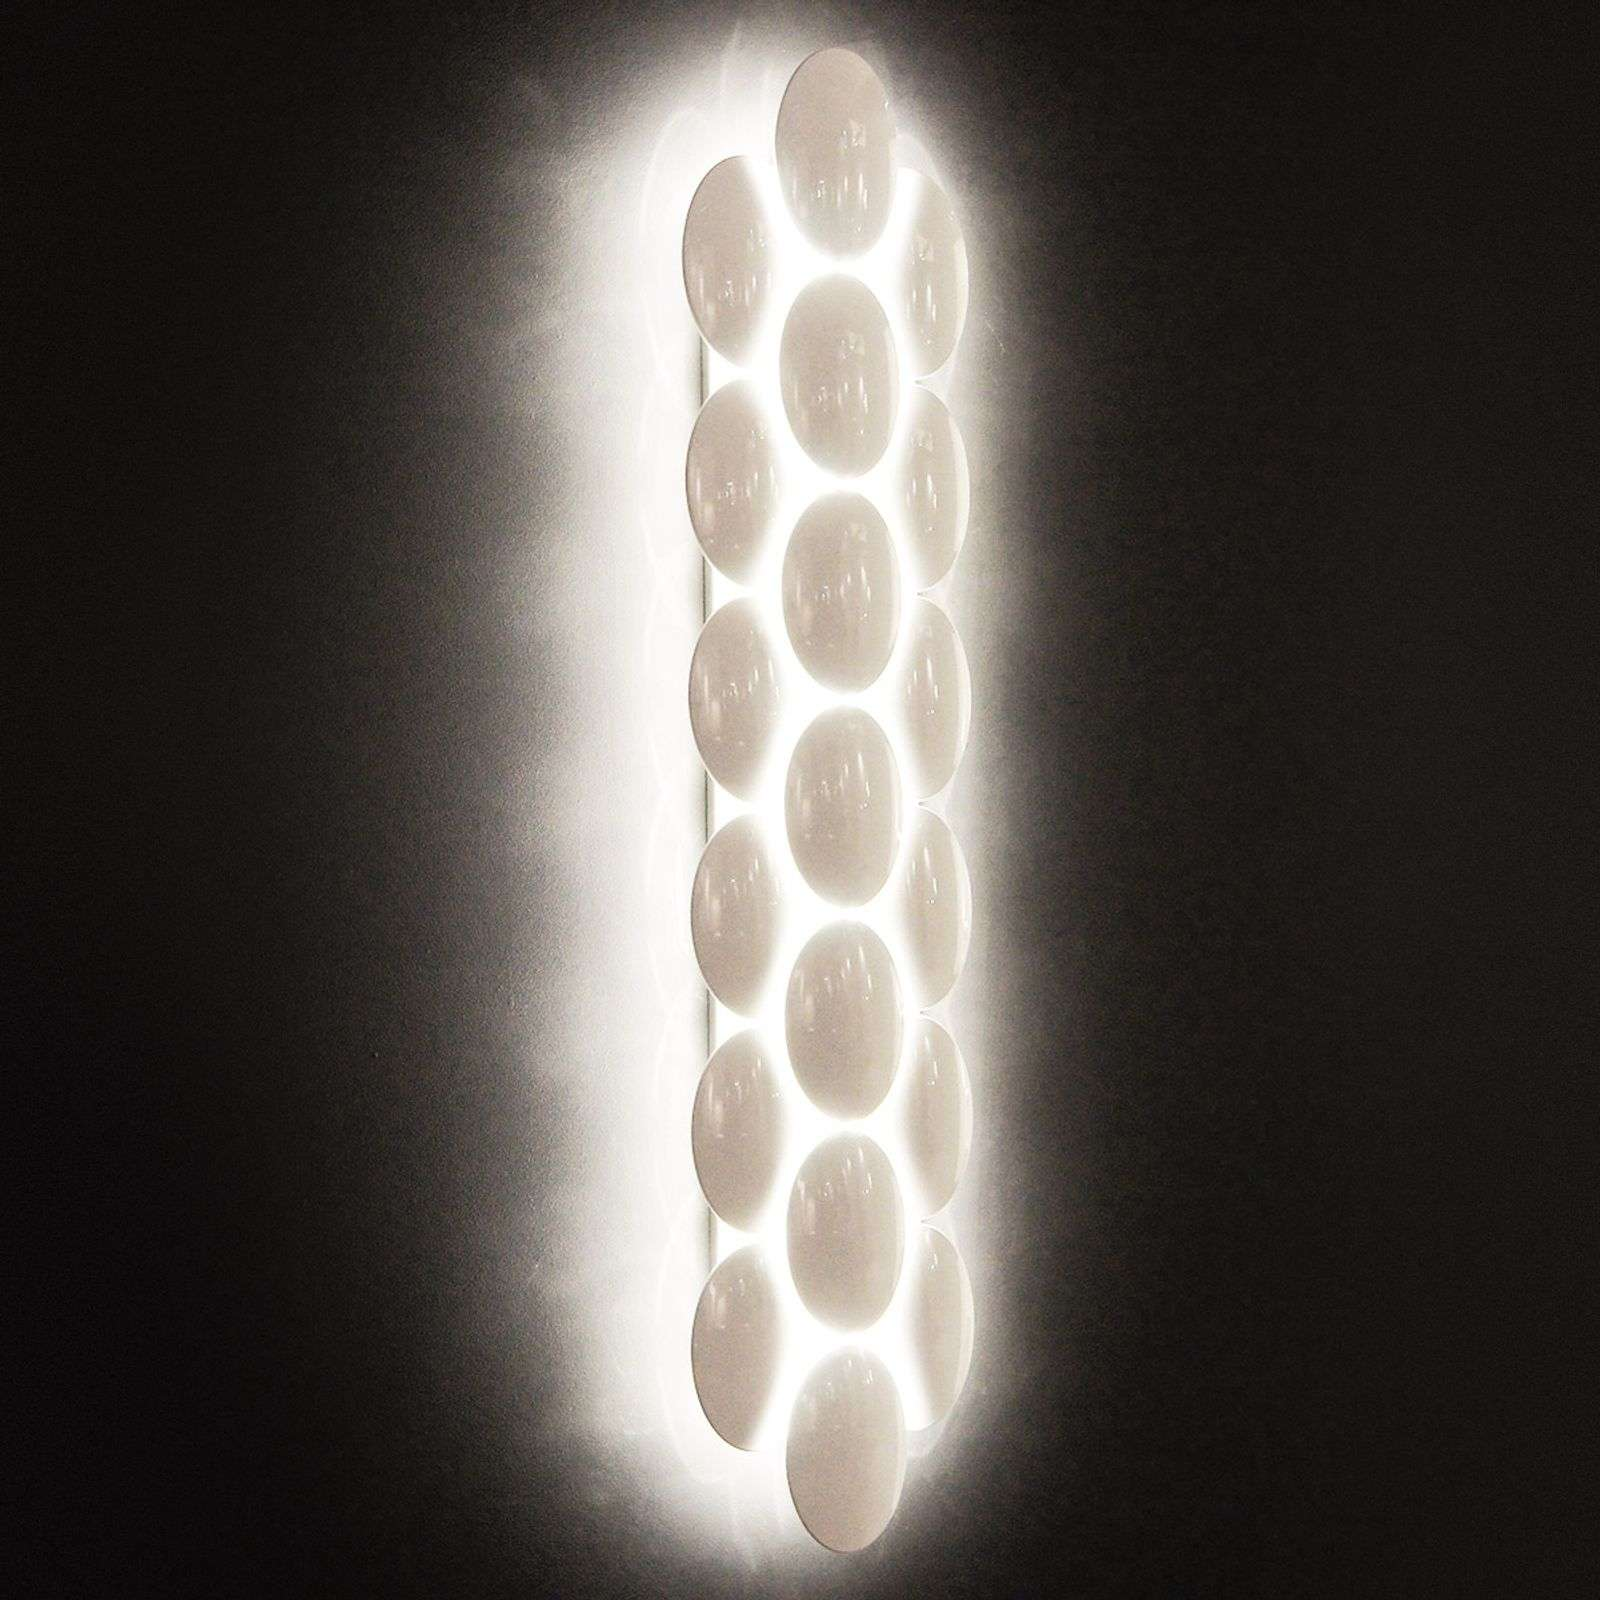 Dimmable LED wall light Obolo 14-bulb